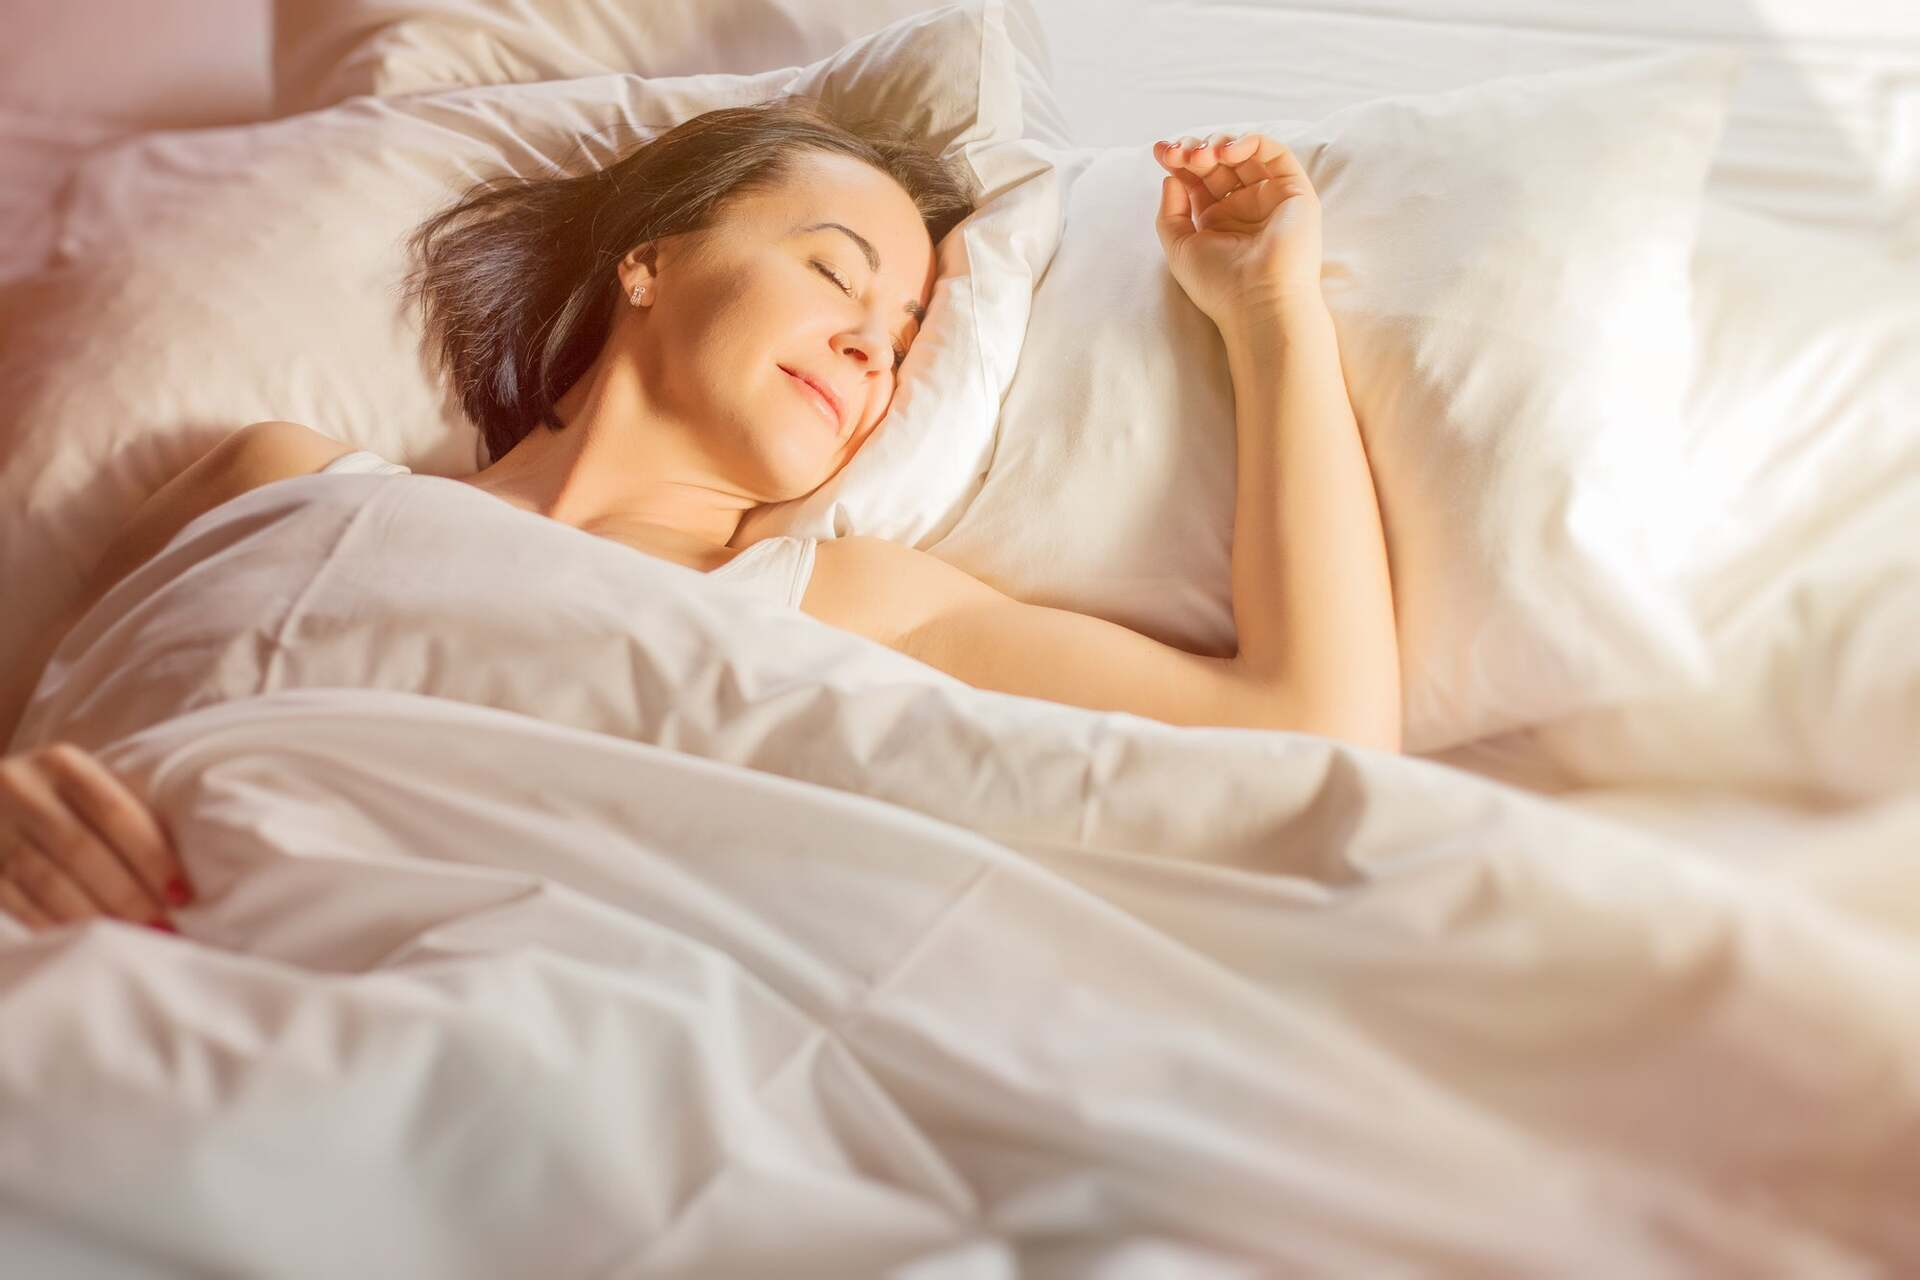 6 Factors That Affect Your Sleep